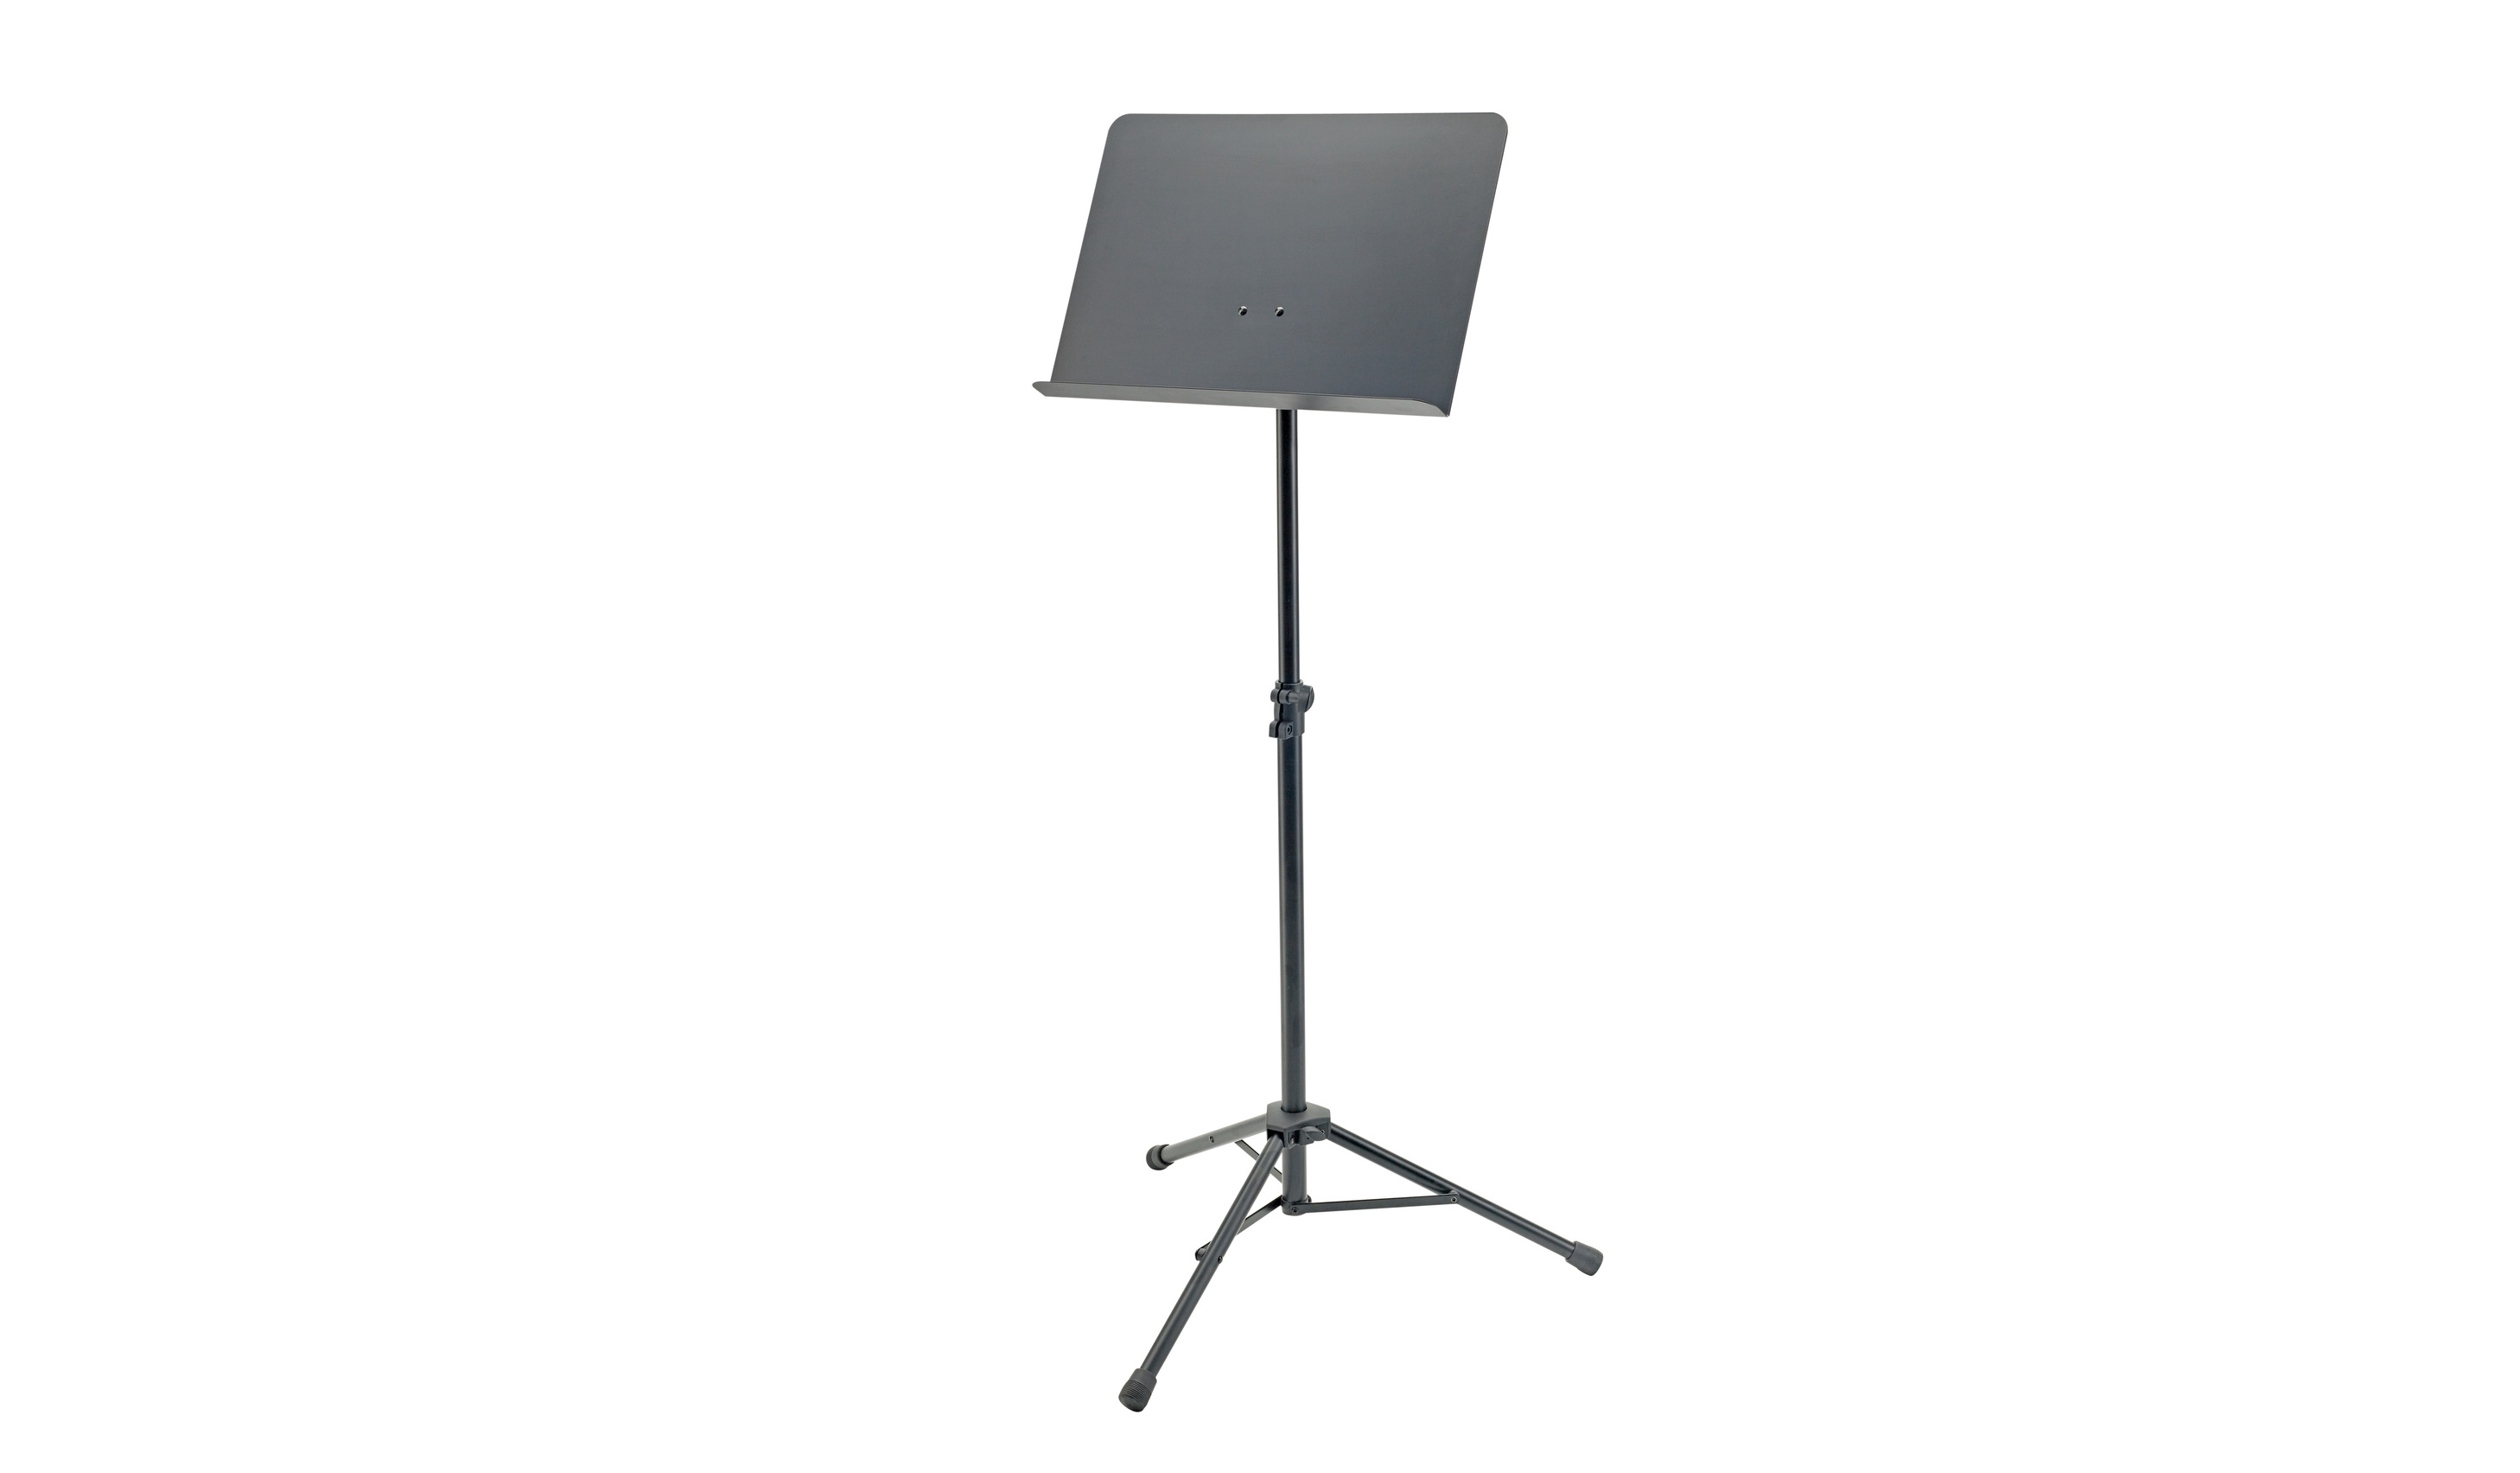 K&M Music Stand Orchestral Music Stand (Model: 11960)